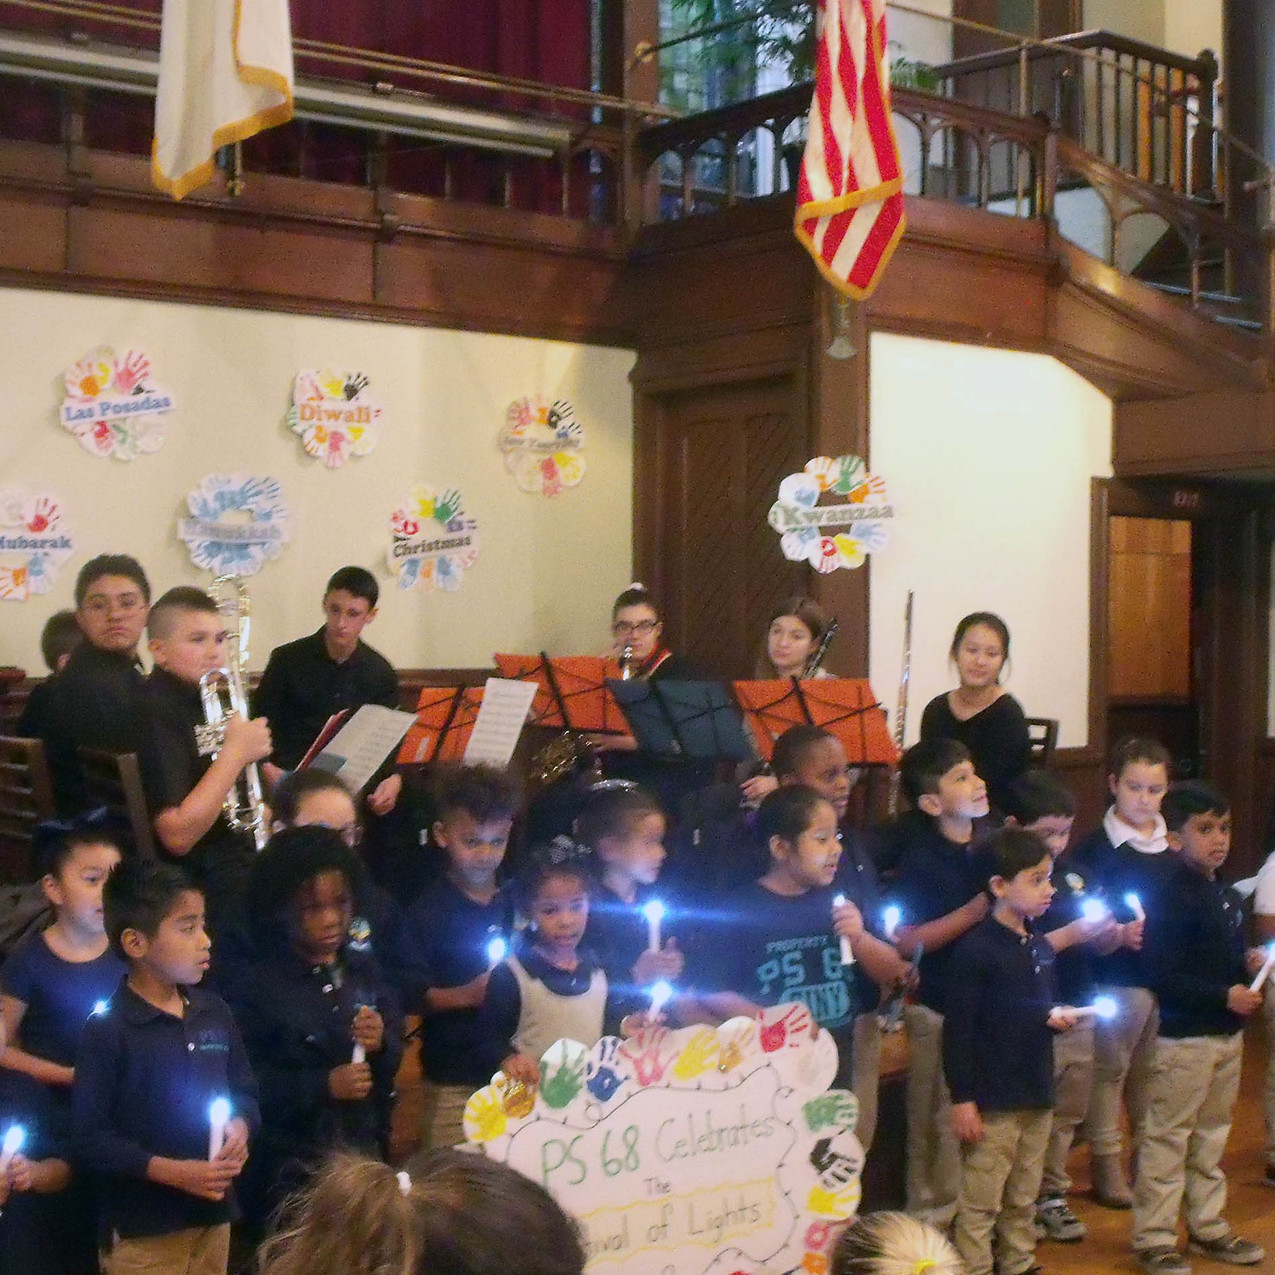 PS 68 Choir and IS 51 Band